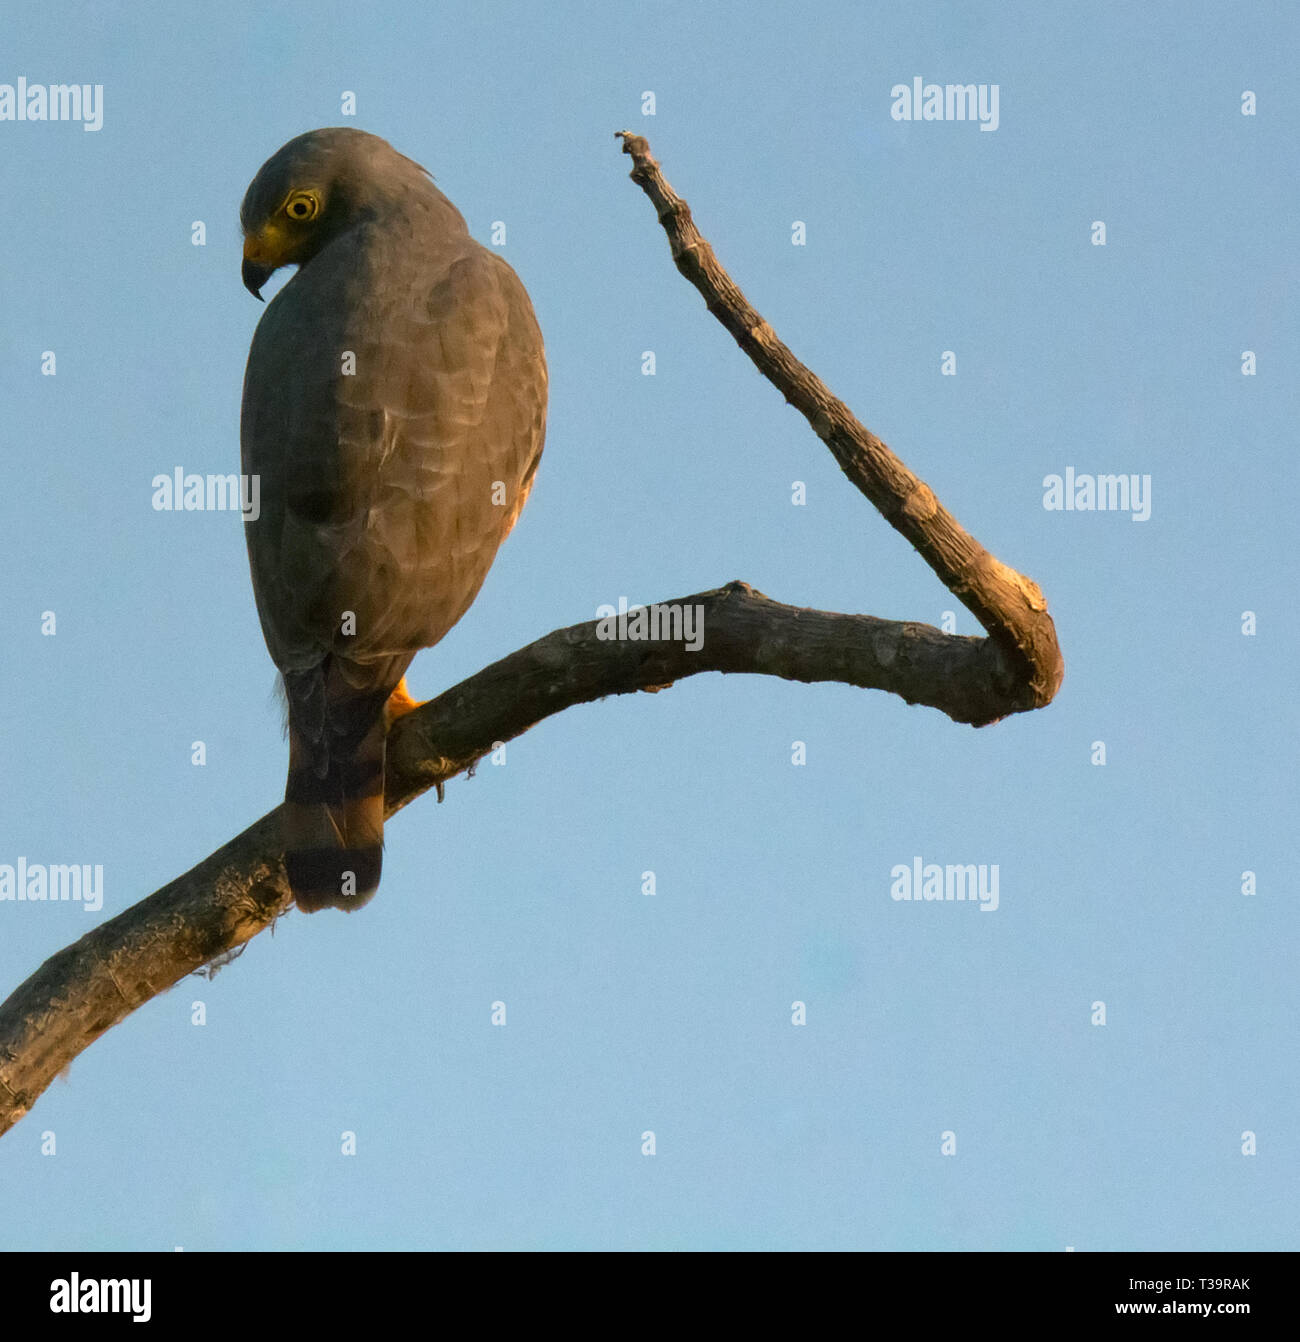 Swiveling its head almost backwards a roadside hawk peers down along back after almost sticking its beak into its left wing - Stock Image